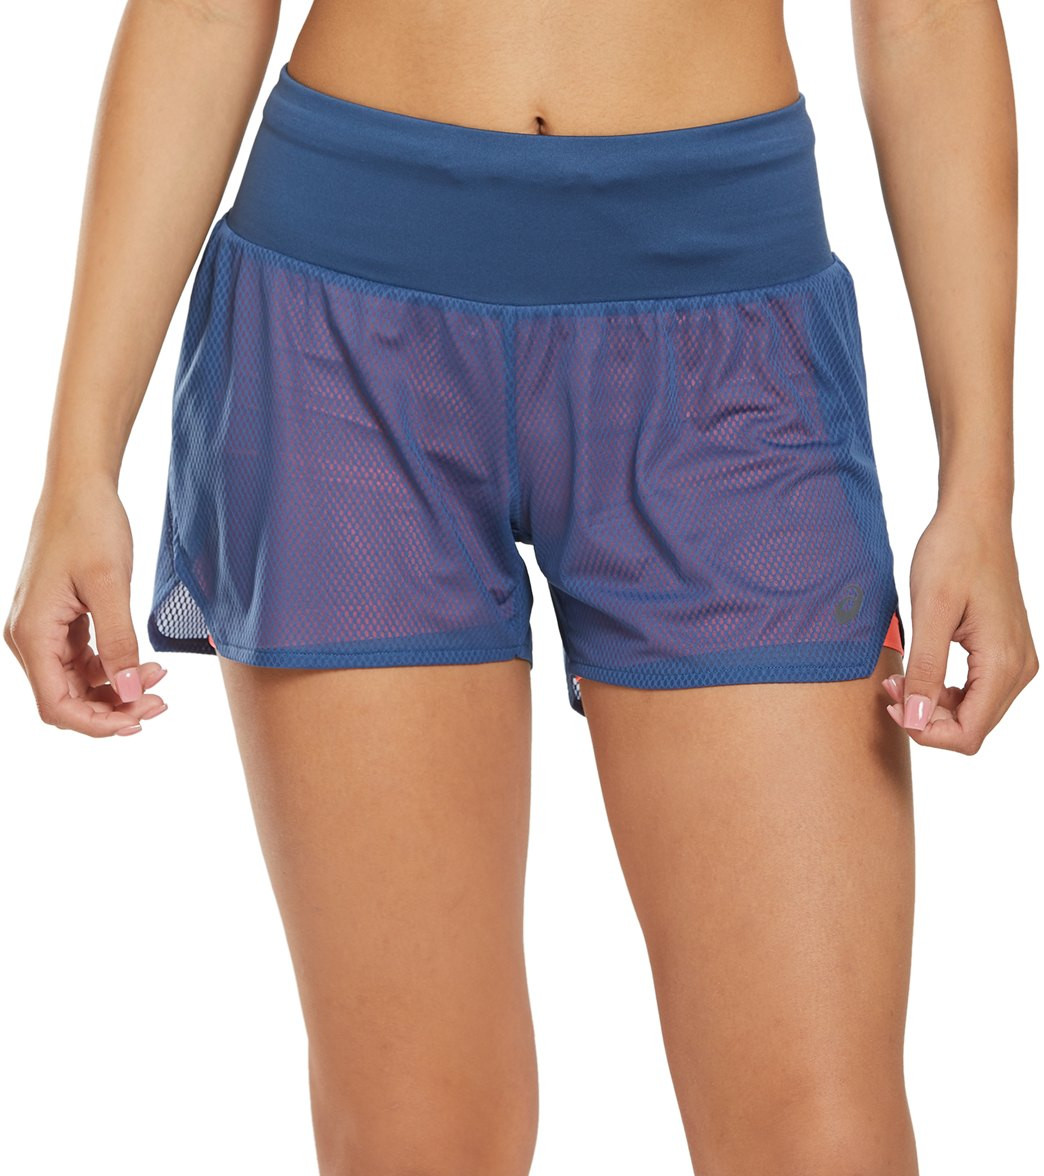 2db860bab8 Asics Women's Cool 2-in-1 3.5in Short